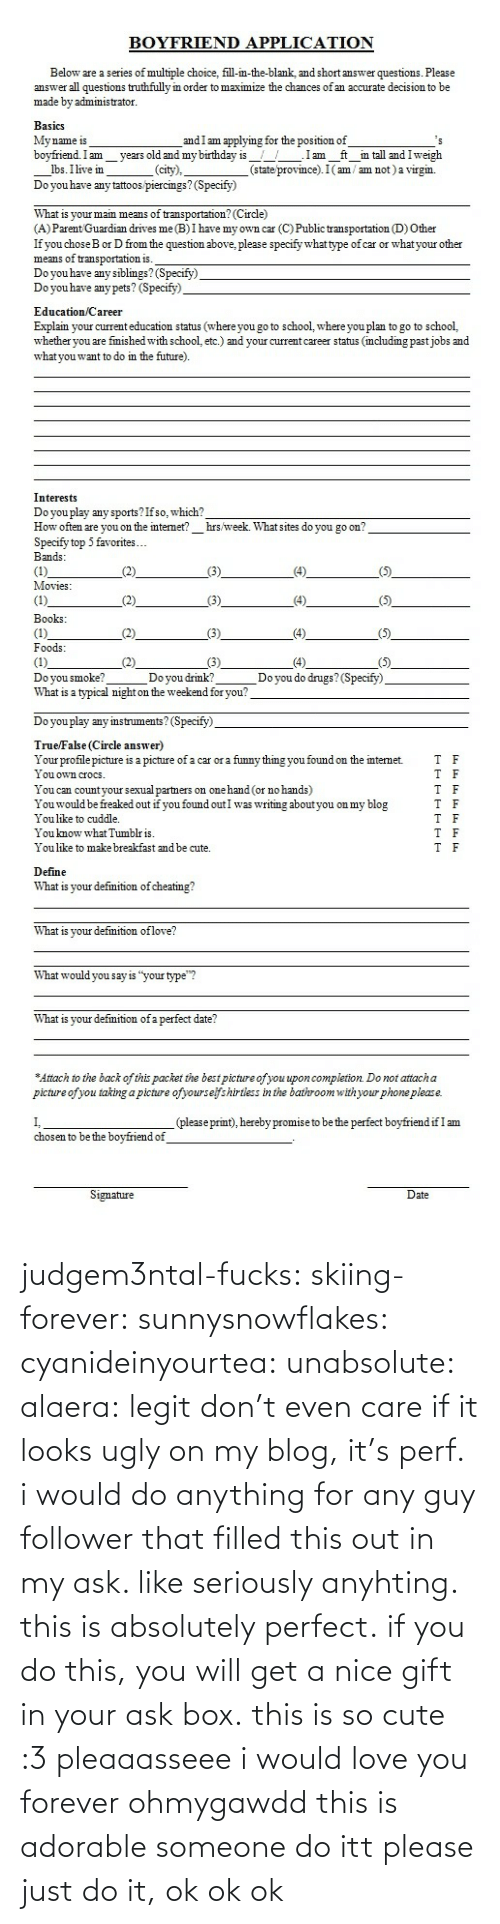 "Specify: BOYFRIEND APPLICATION  Below are a series of multiple choice, fill-in-the-blank, and short answer questions. Please  answer all questions truthfully in order to maximize the chances of an accurate decision to be  made by administrator.  BasicS  My name is  bovfriend.Im vears old and my birthday is.Iam ft in tall and Iweigh  and I am applying for the position of  lbs. Ilivem_.  Do you have any tattoos piercings? (Specify)  (city),  (state province). I(am / am not) a virgin.  What is your main means of transportation? (Circle)  (A) Parent Guardian drives me(B)I have my own car (C) Public transportation (D) Other  If you choseB or D from the question above, please specify what type of car or whatyour other  means of transportation is.  Do you have any siblimgs? (Specify)  Do you have any pets? (Specify)  Education Career  Explain your current education status (where you go to school, where you plan to go to school,  whether you are fmished with school, etc.) and your current career status (mcluding pastjobs and  what you want to do in the future)  Interests  Do you play any sports?Ifso, which?  How often are you on the internet? hrs week. What sites do you go on  Specify top 5 favorites...  Bands  Movies   Books  Foods  Doyou smoke?  What is a typical night on the weekend for you?  Doyou drmk?  Do you do drugs?(Specify)  Do you play any imstruments? (Specify)  TrueFalse (Circle answer)  Your profile picture is a picture of a car or a funny thmg you found on the internet.  I ouown croCS  You can countyour sexual partners on one hand (or no hands)  Youwould be freaked out if you found outI was writing about you on my blog  You like to cuddle.  You know what Tumblris  You like to make breakfast and be cute.  T  F  T F  T F  Define  What is your defmition of cheating!?  What is vour defmition oflove?  What would you say is ""your type""?  What is your defmition of a perfect date?  Attach to the back of this packet the best picture ofyou upon completion Do not attach a  picture ofyou taking a picture ofyourselfshirtless in the bathroom withyour phone please.  (pleaseprint), hereby promise to be the perfect boyfriendif I am  chosen to be the bovfriend of  Signature  ate judgem3ntal-fucks:  skiing-forever:  sunnysnowflakes:  cyanideinyourtea:  unabsolute:  alaera:  legit don't even care if it looks ugly on my blog, it's perf.  i would do anything for any guy follower that filled this out in my ask. like seriously anyhting. this is absolutely perfect.  if you do this, you will get a nice gift in your ask box.  this is so cute :3 pleaaasseee i would love you forever  ohmygawdd this is adorable someone do itt  please just do it, ok ok ok"